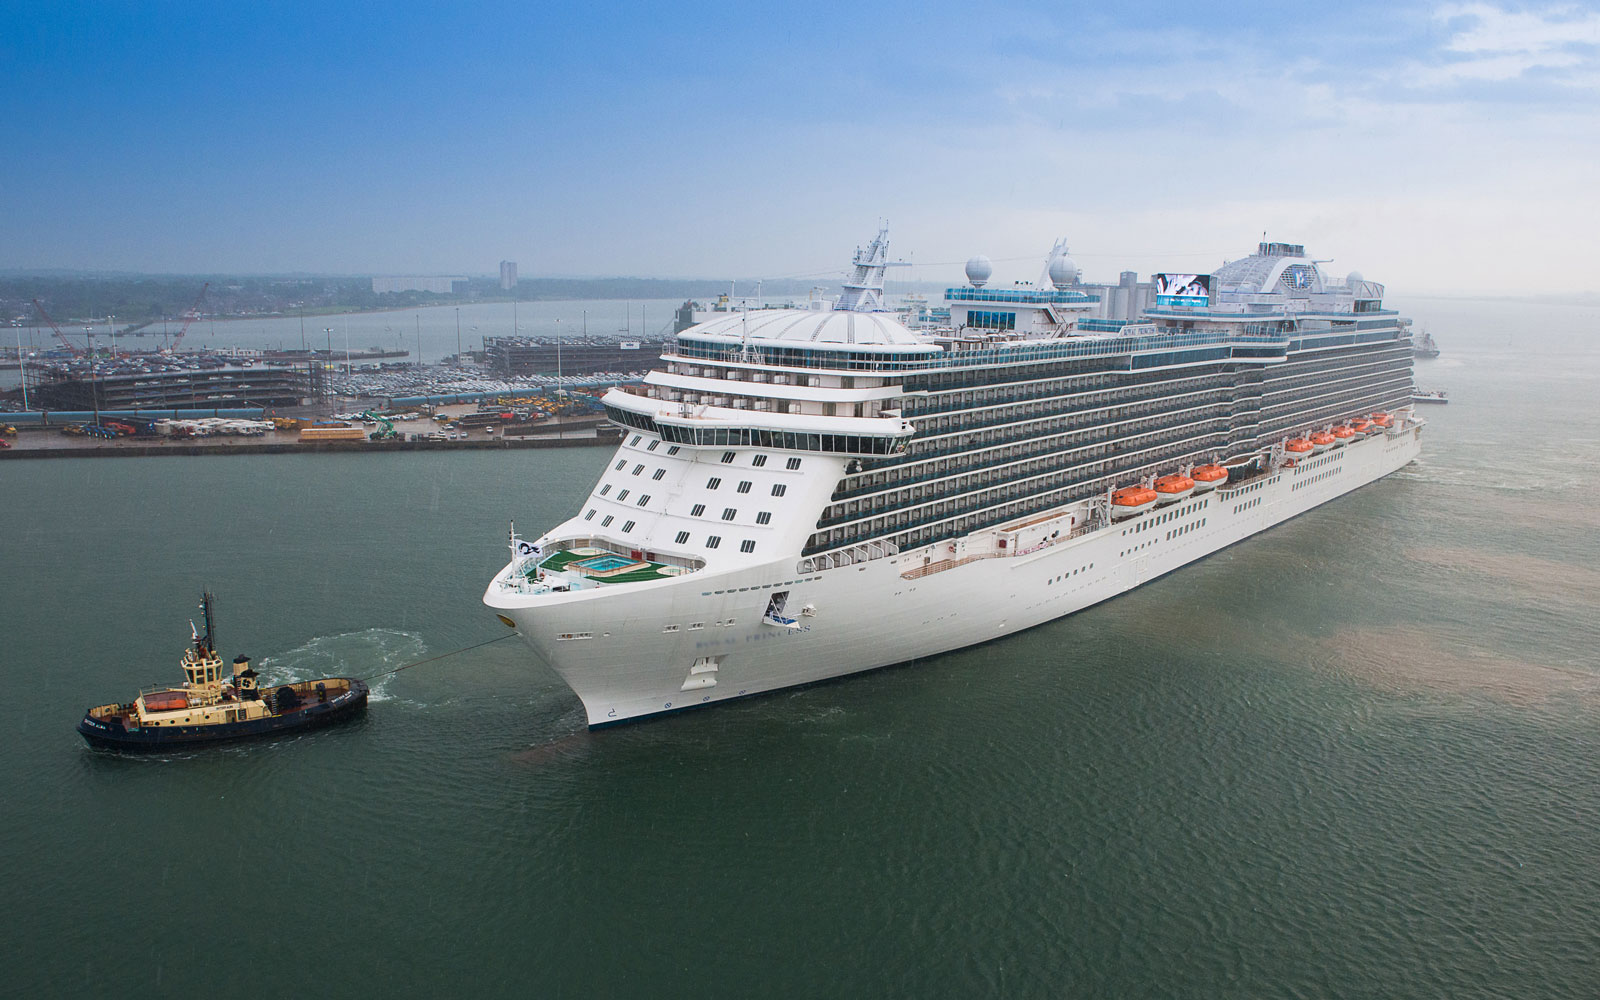 Five Things to Know About Princess Cruises' Regal Princess Cruise Ship